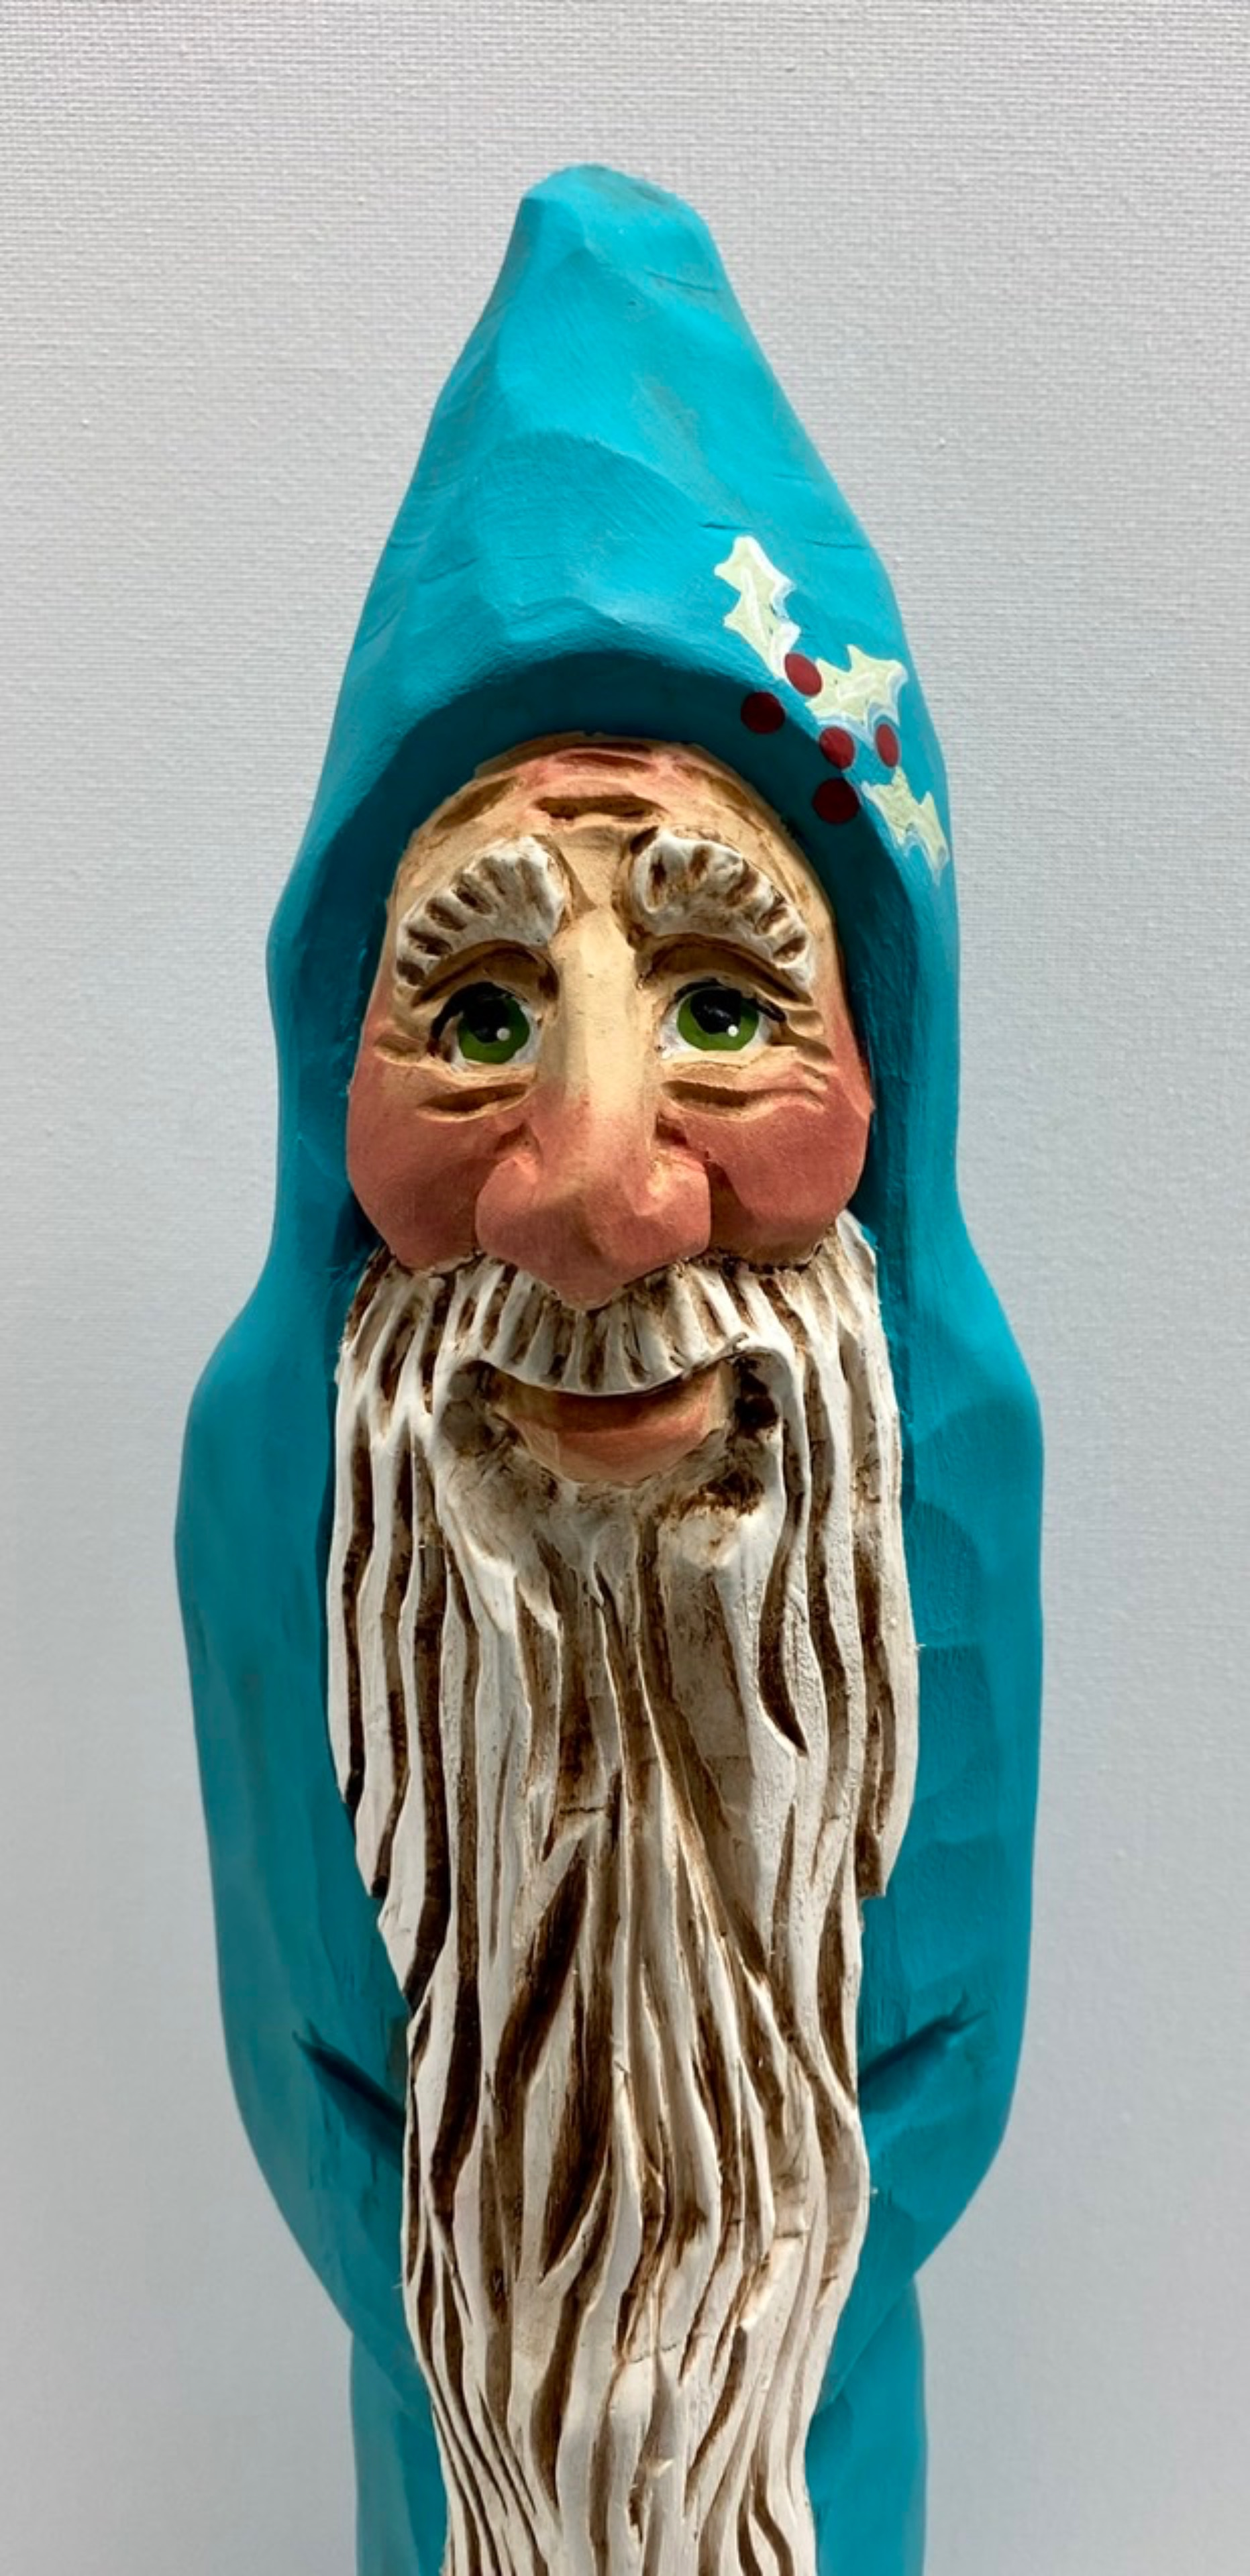 Large Santa in Turquoise